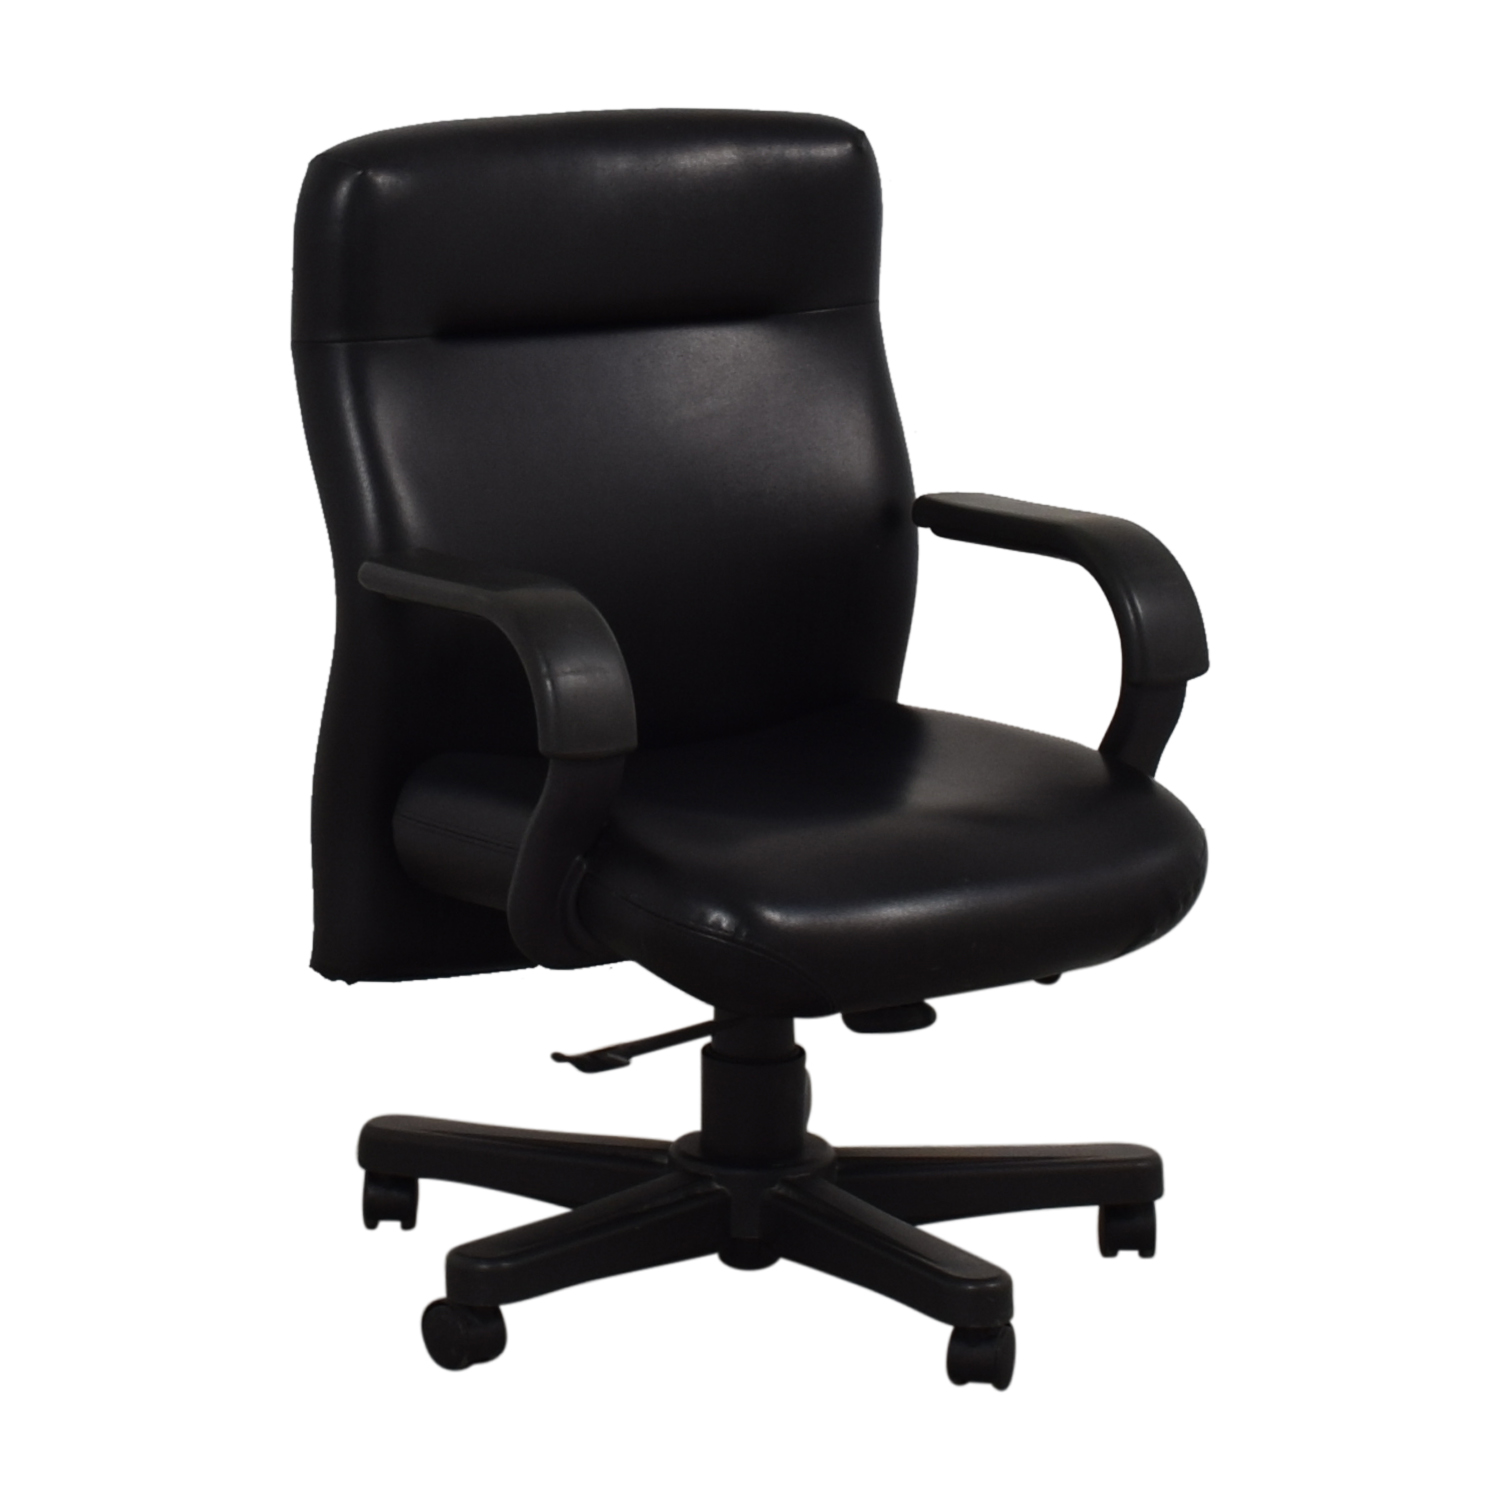 Knoll Knoll Office Chair second hand